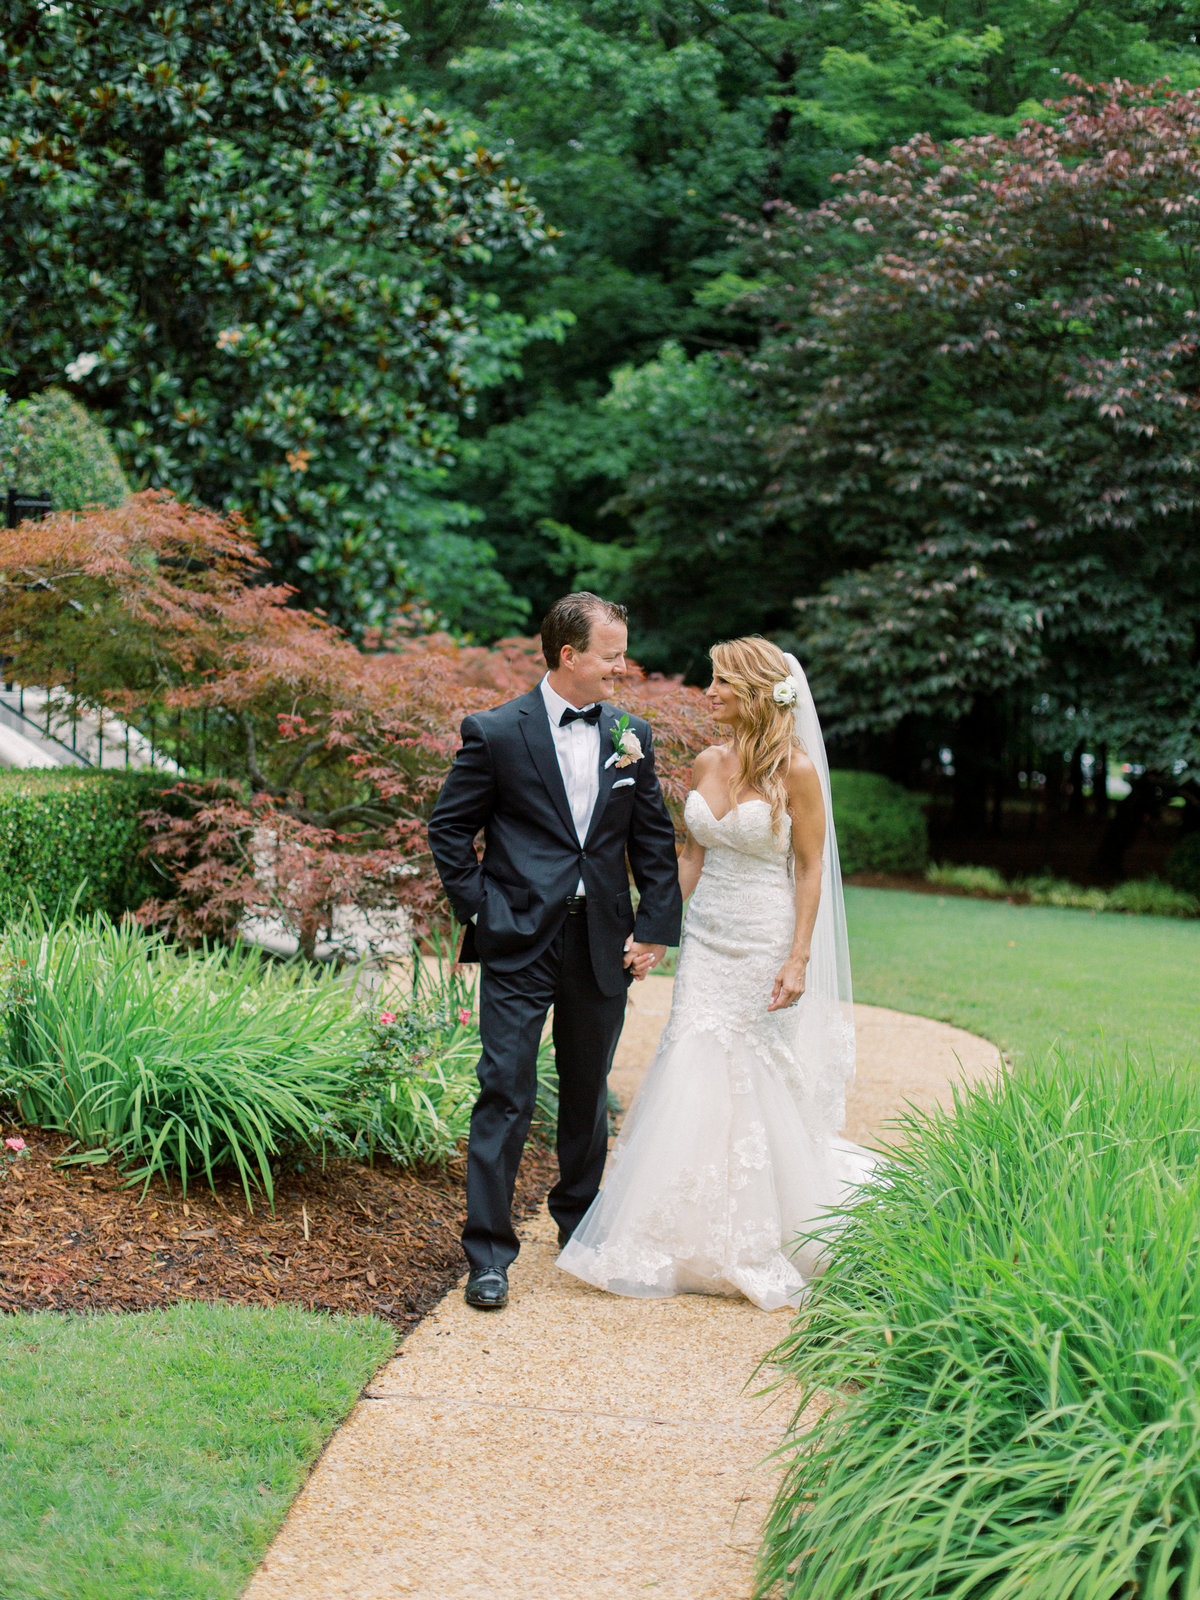 2019-06-08Carrie&MikeWedding-284